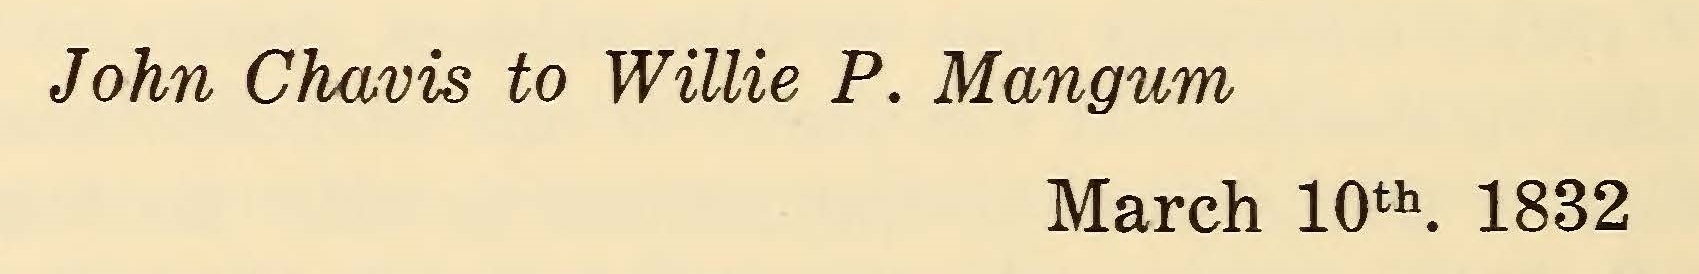 Chavis, John, March 10, 1832 Letter to Willie P. Mangum Title Page.jpg